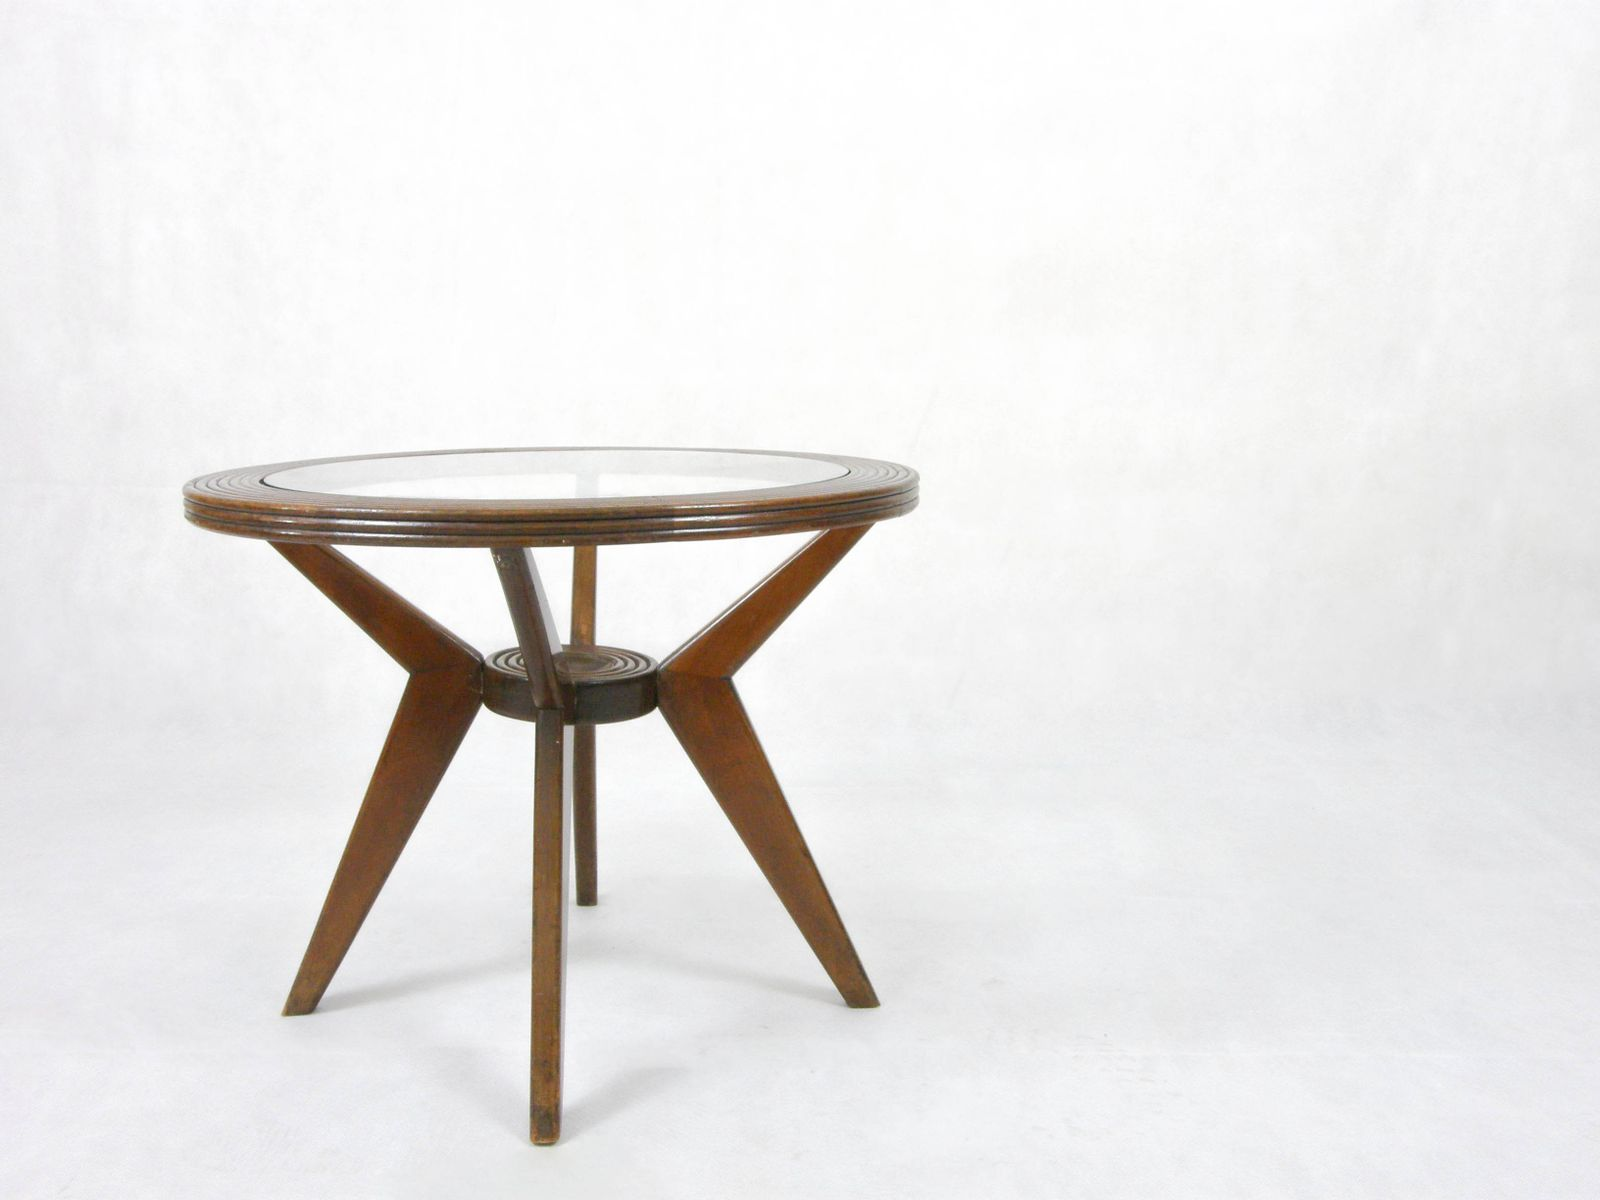 table basse ronde en bois et en verre italie 1950s en vente sur pamono. Black Bedroom Furniture Sets. Home Design Ideas